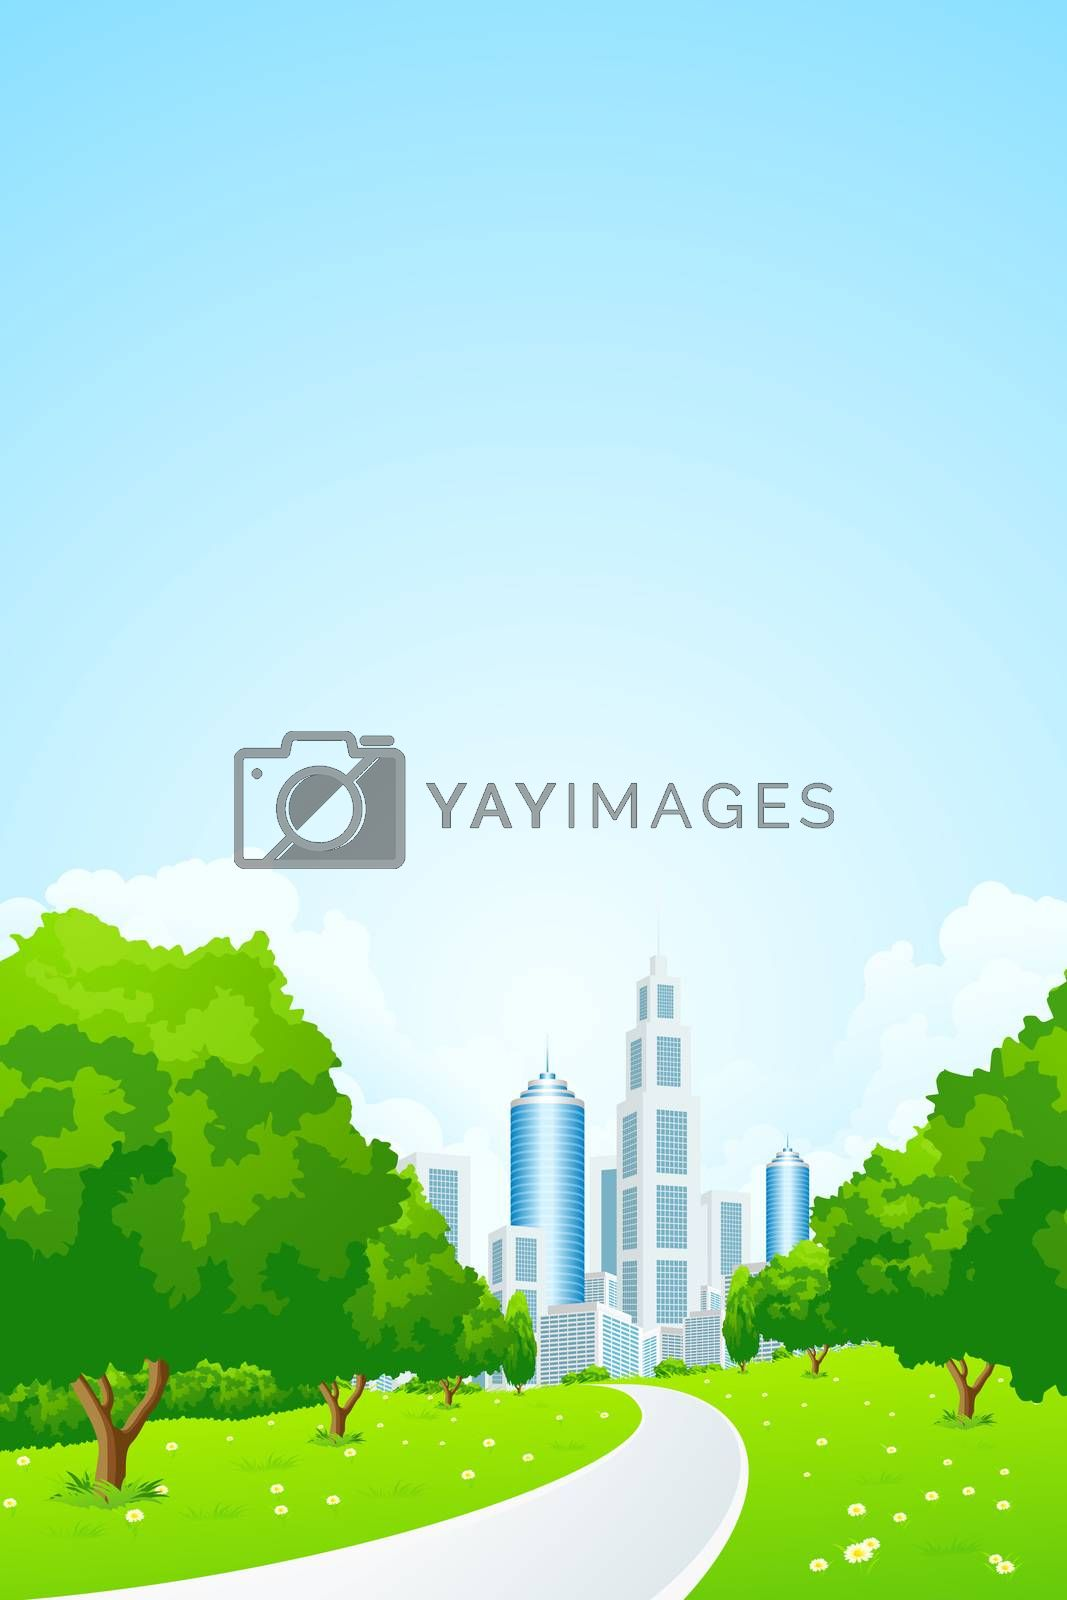 City Landscape with Green Trees by WaD